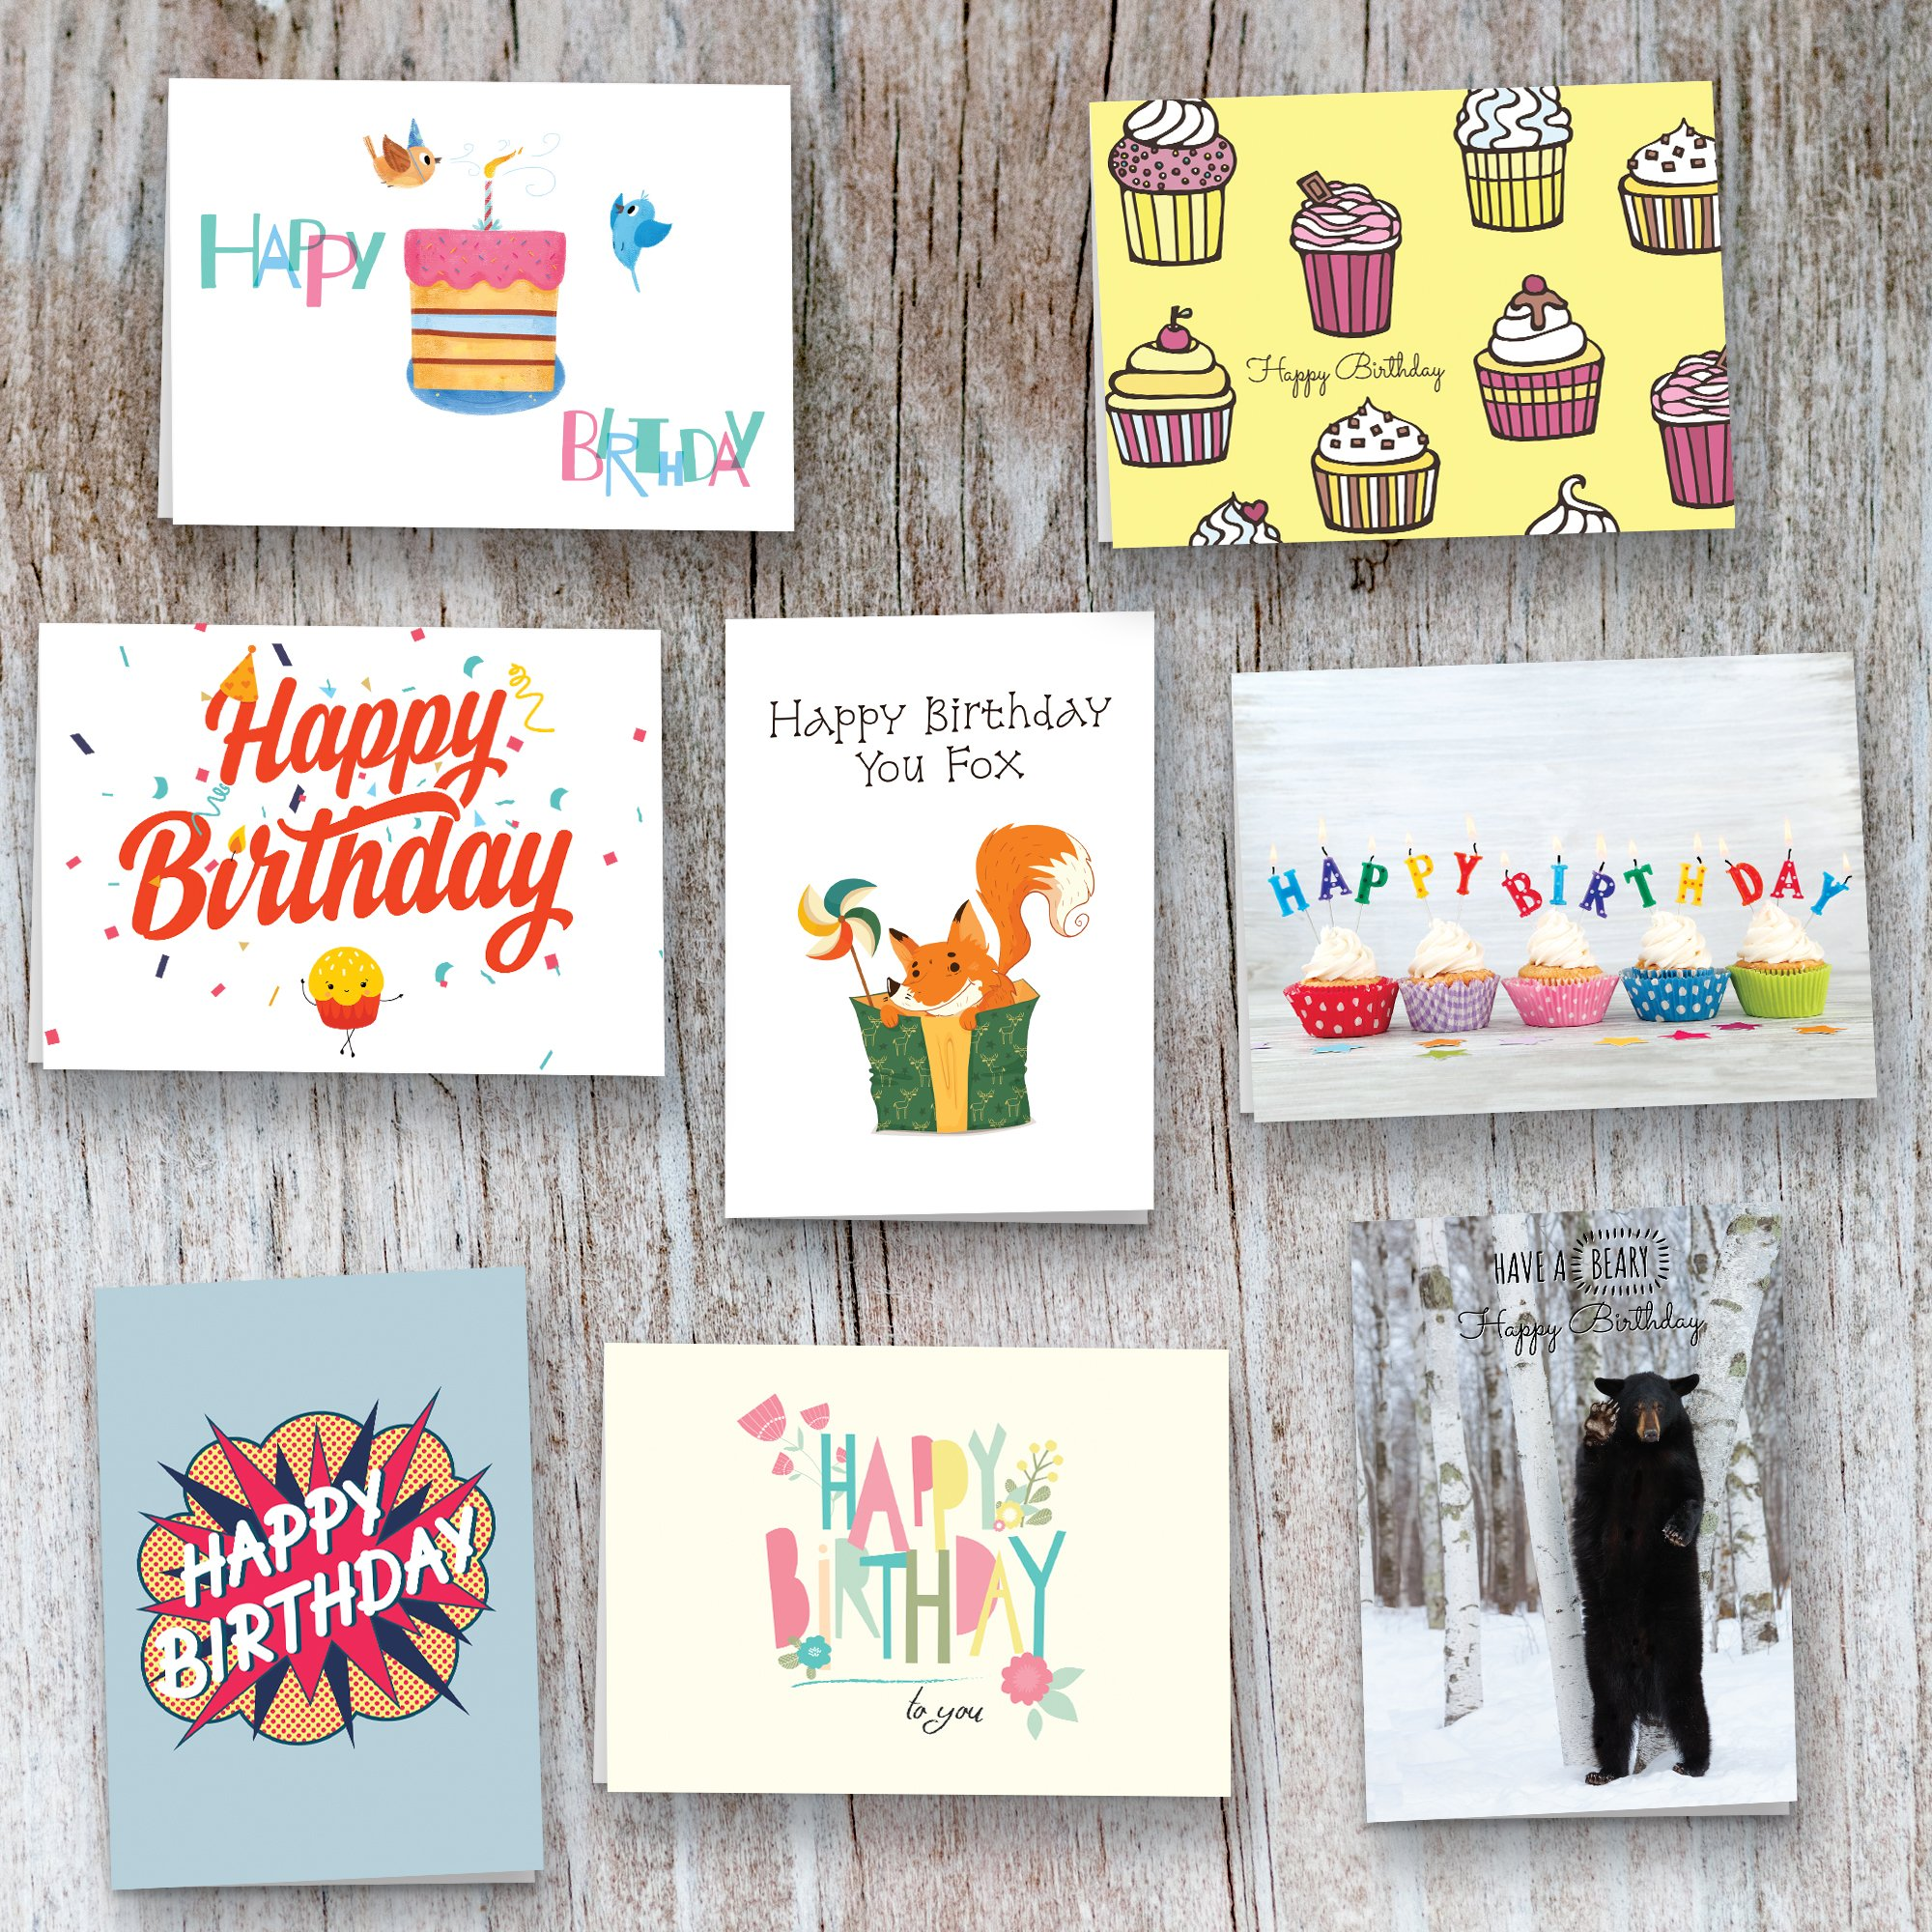 40 Birthday Cards Assortment AEUR Happy Card Bulk Box Sets For Women And Men Children Adults